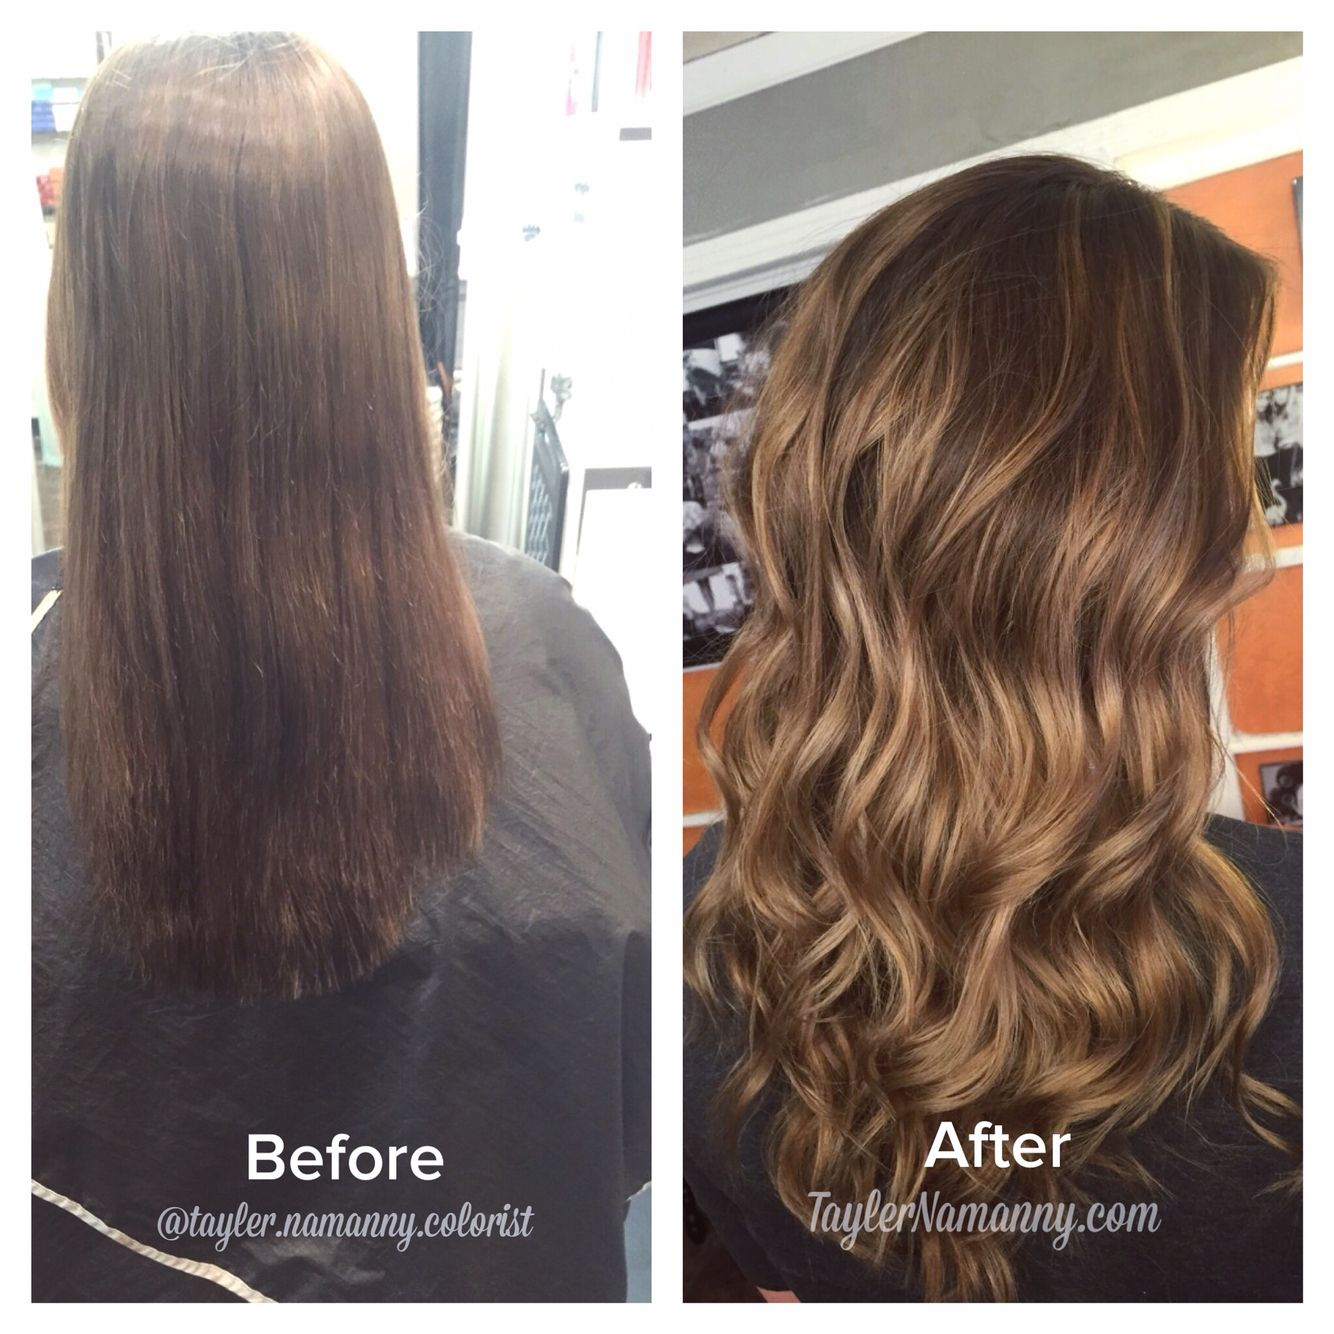 Balayage Brunette Hair Painting Dimensional Brunette Bronde Before And After By Tayler Namann Balayage Brunette Brunette Balayage Hair Brunette Hair Color